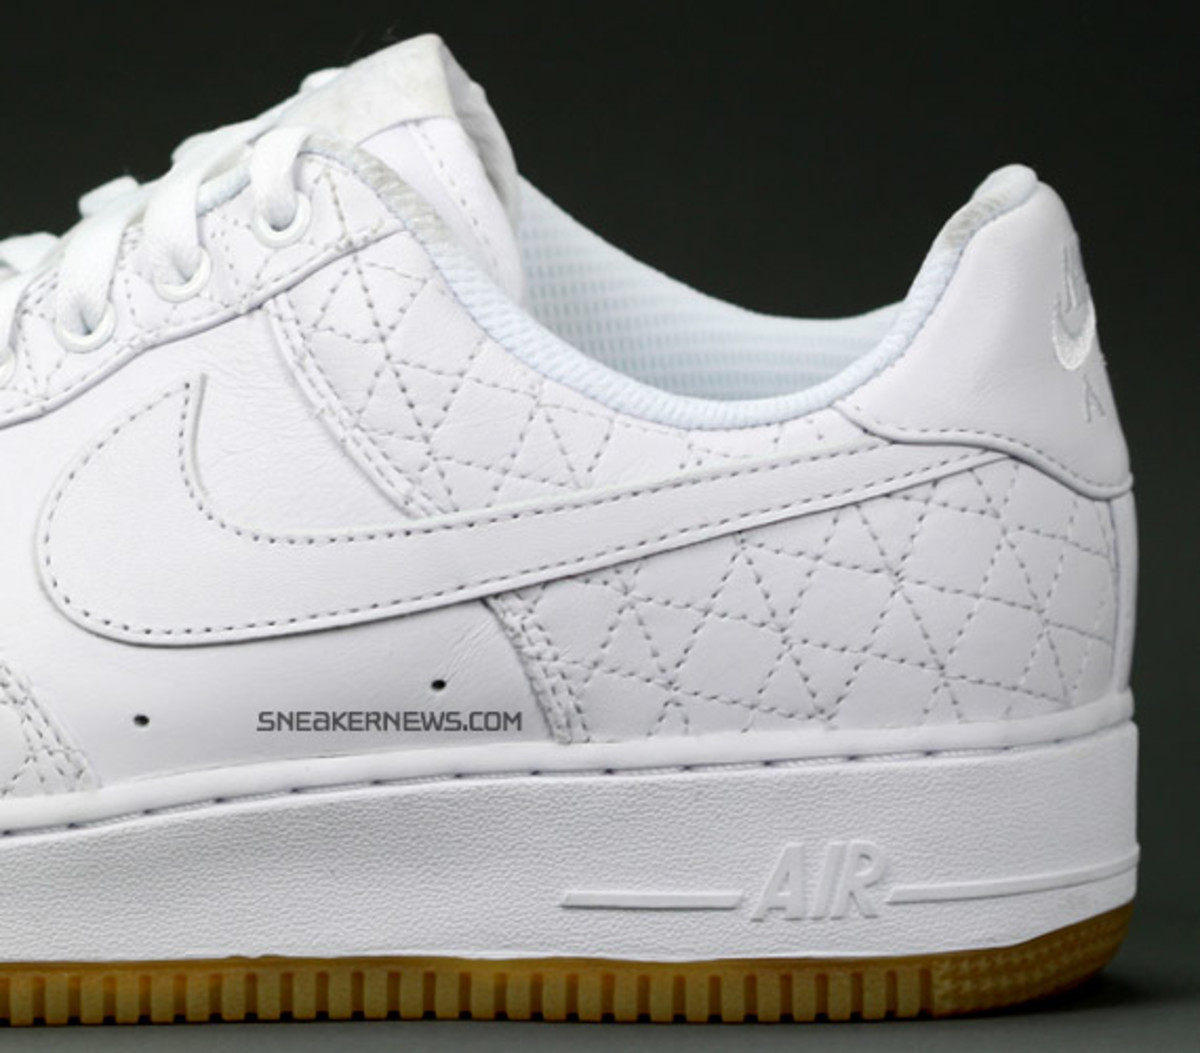 nike_airforce1_un_michael_lau_5